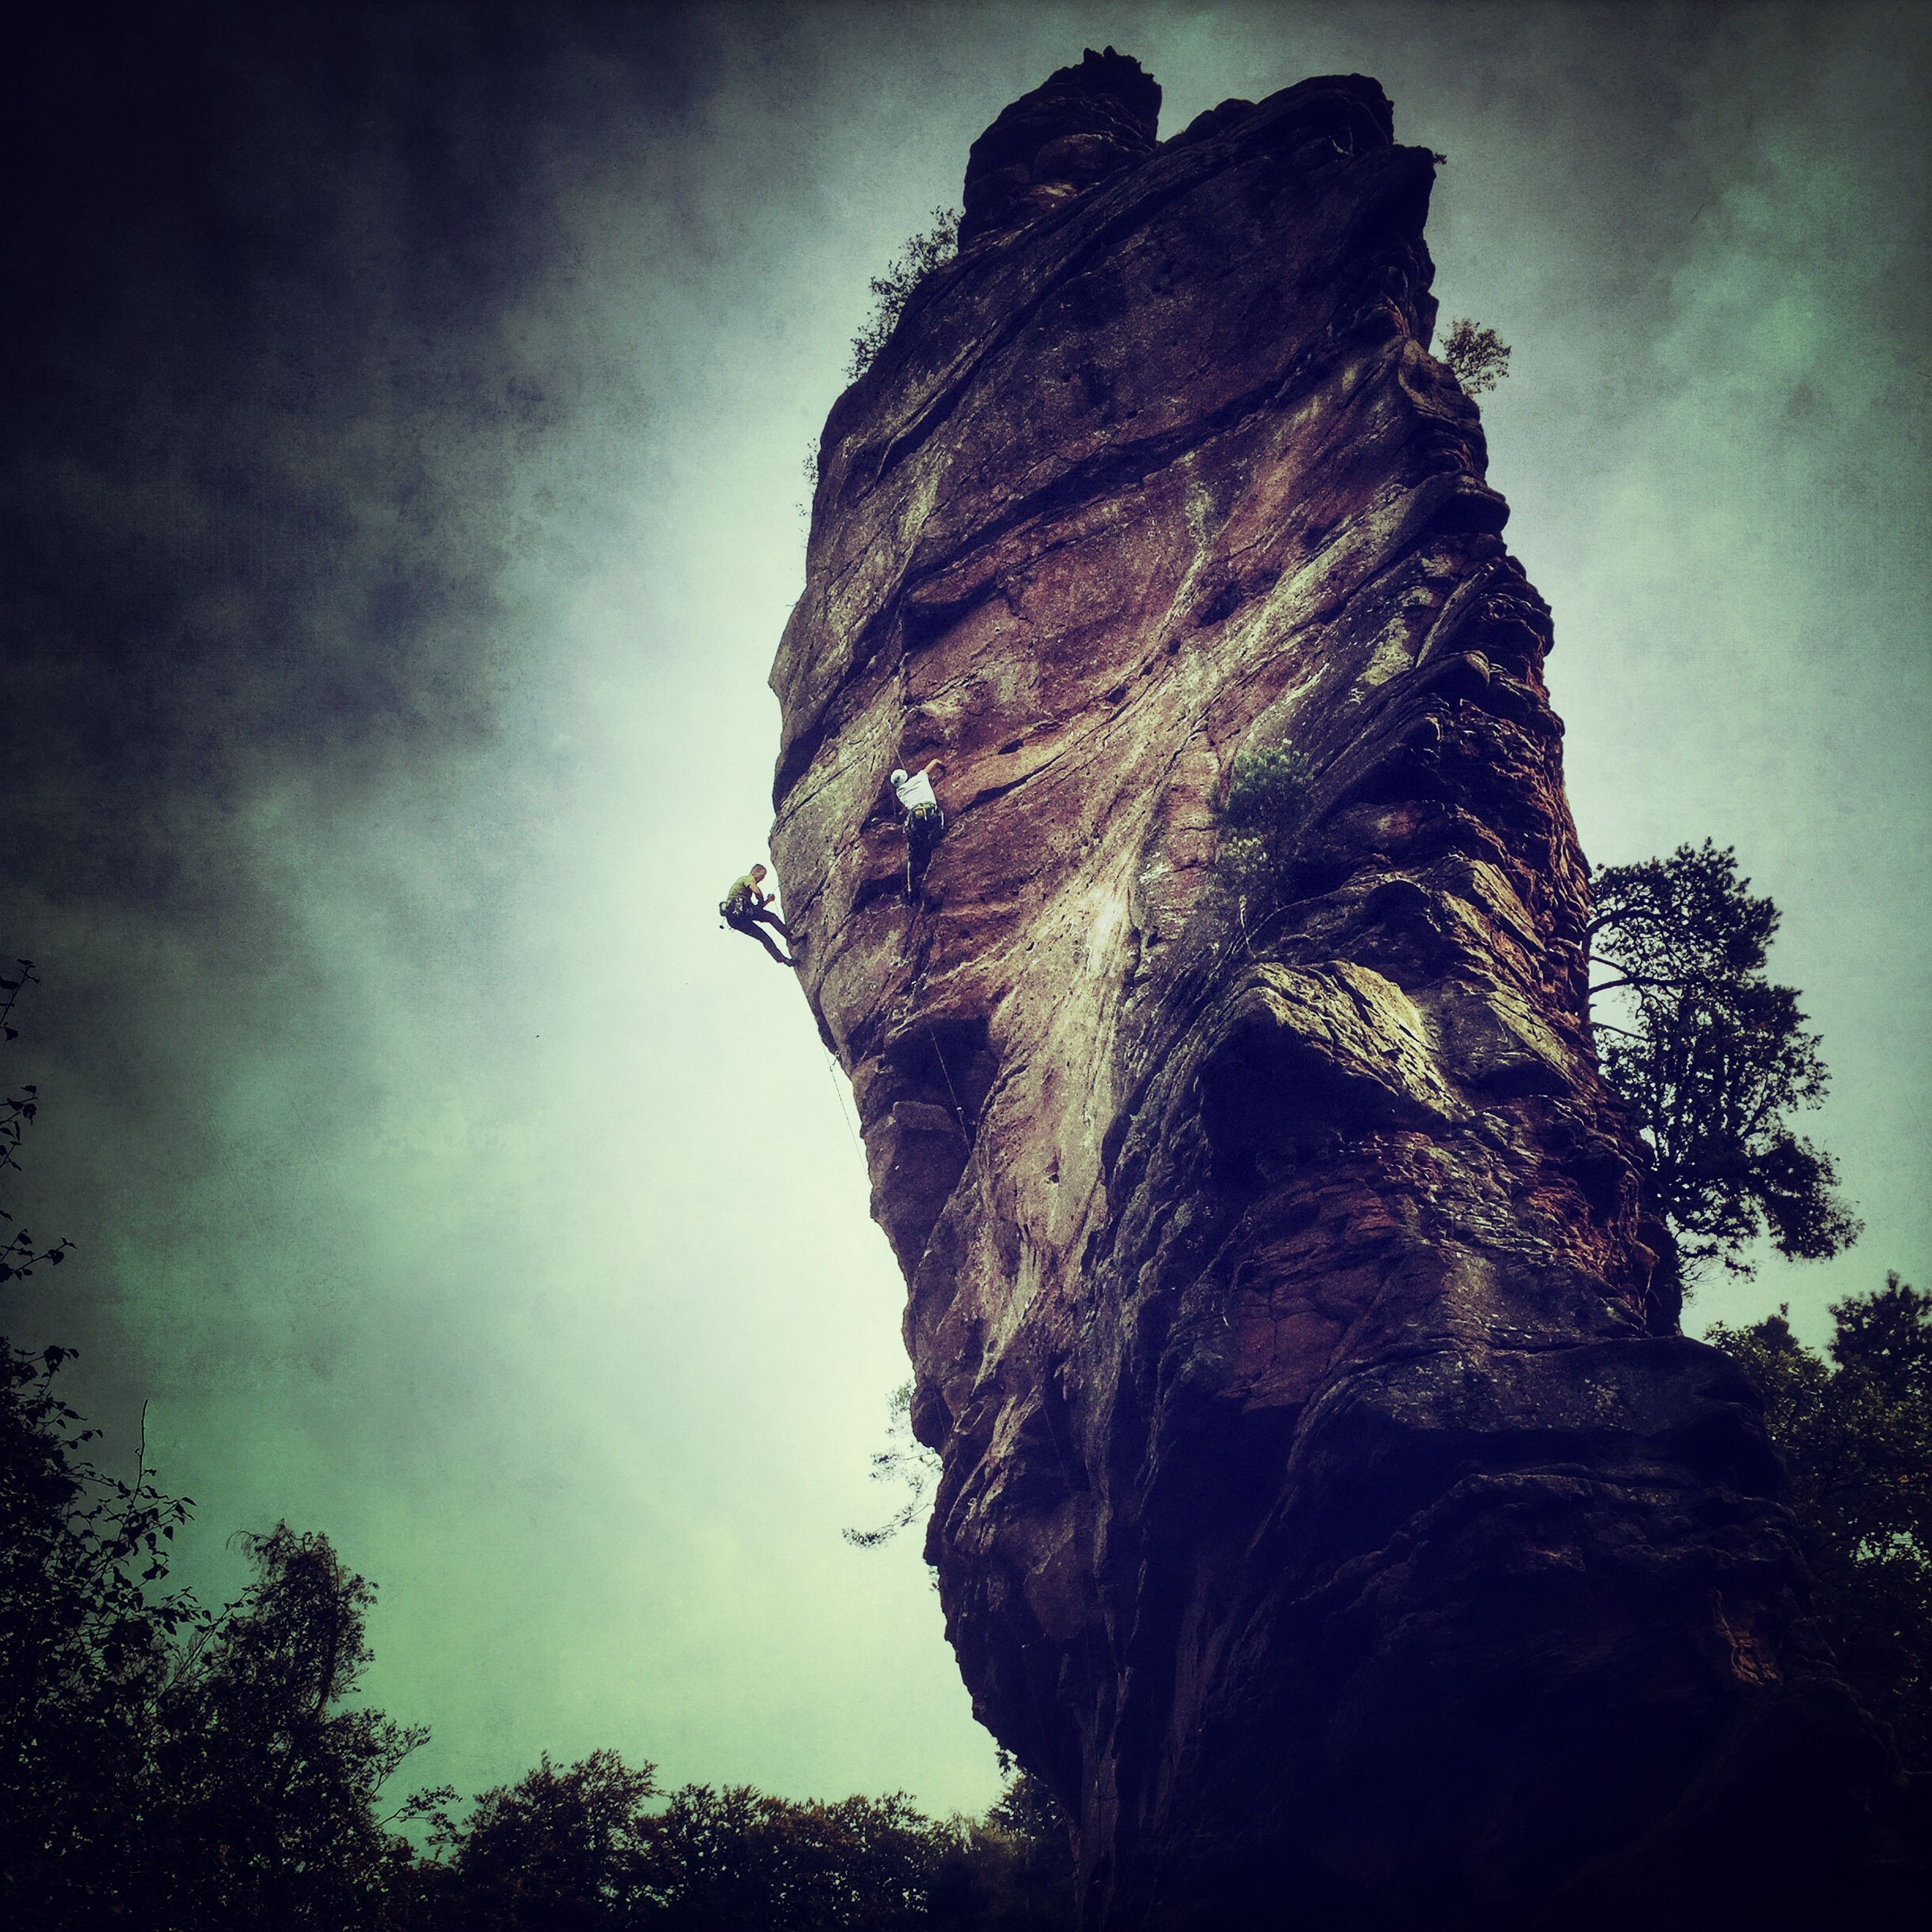 low angle view, sky, tree, rock formation, cloud - sky, silhouette, nature, rock - object, cloud, tranquility, outdoors, no people, day, dusk, sunlight, rocky mountains, cliff, beauty in nature, sculpture, textured